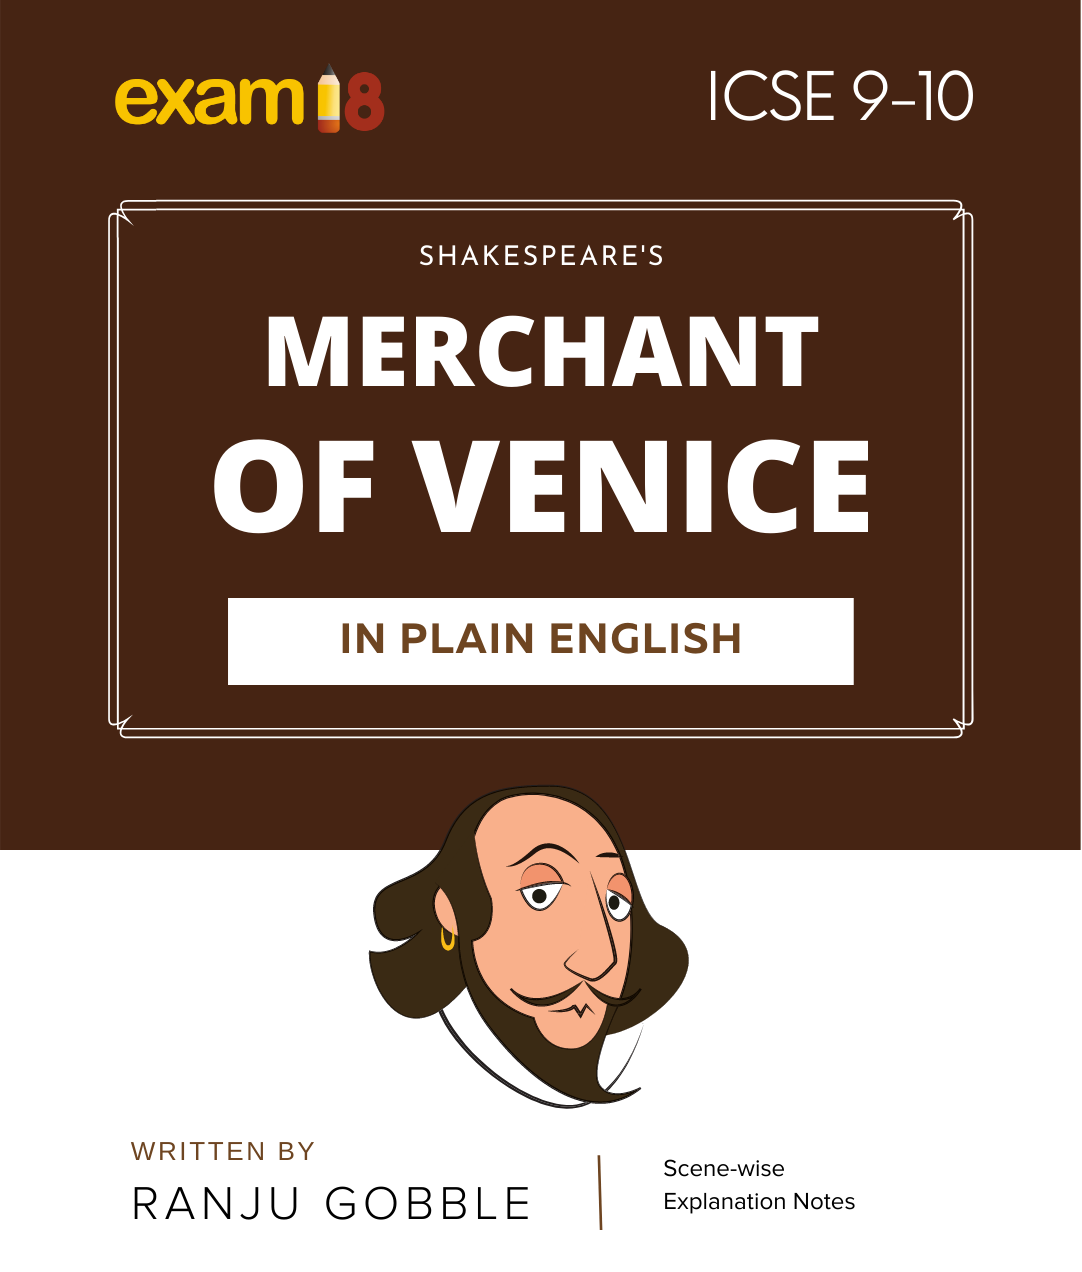 Icse Merchant Of Venice Scene Wise Paraphrase Explanation Note Exam18 Guided Reading Level Student Encouragement How To Shakespeare